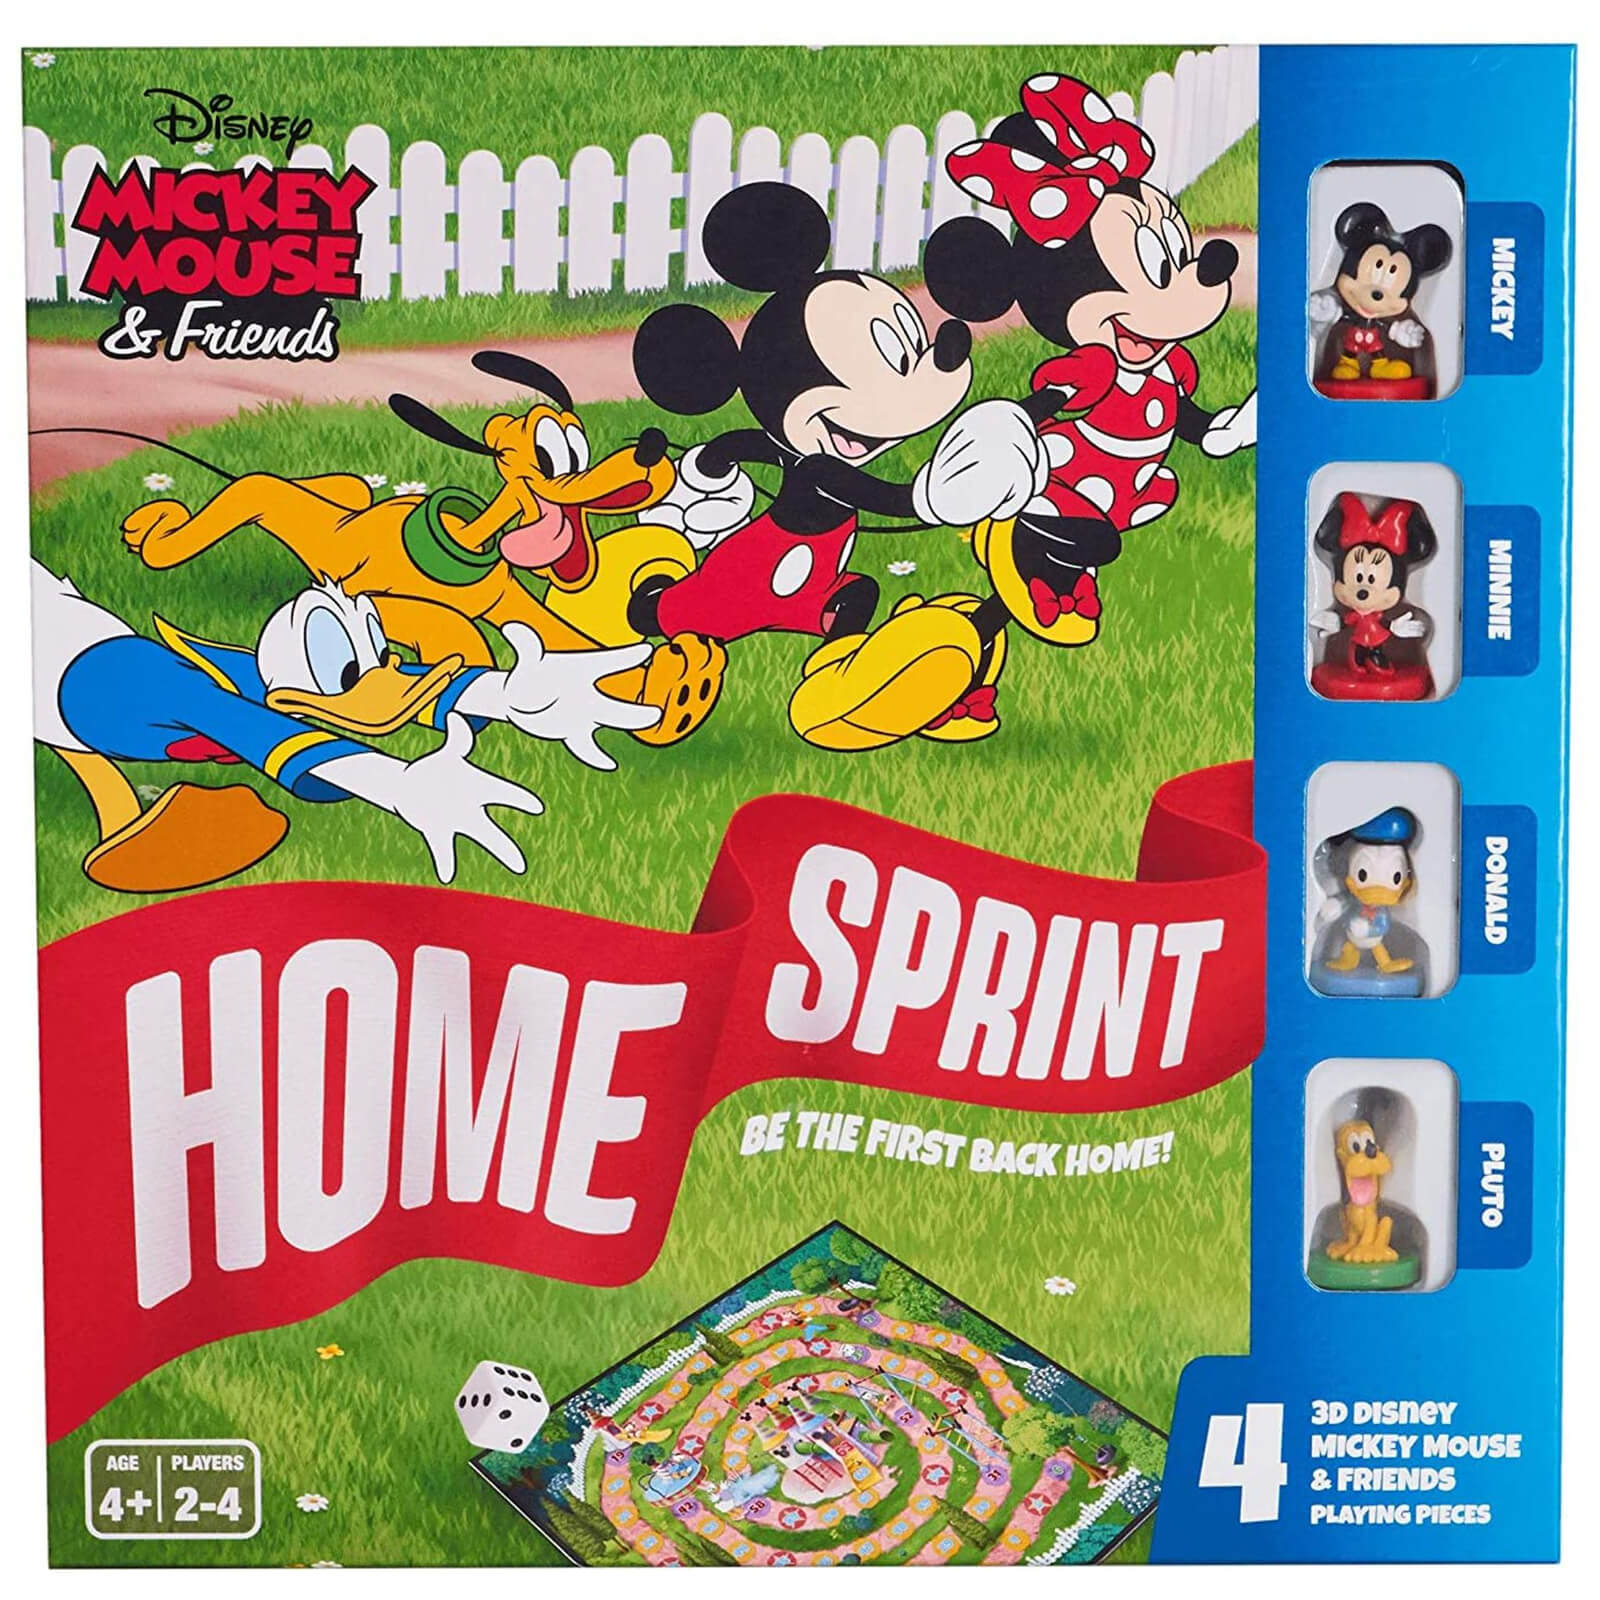 Image of Disney Mickey & Friends Home Sprint Board Game